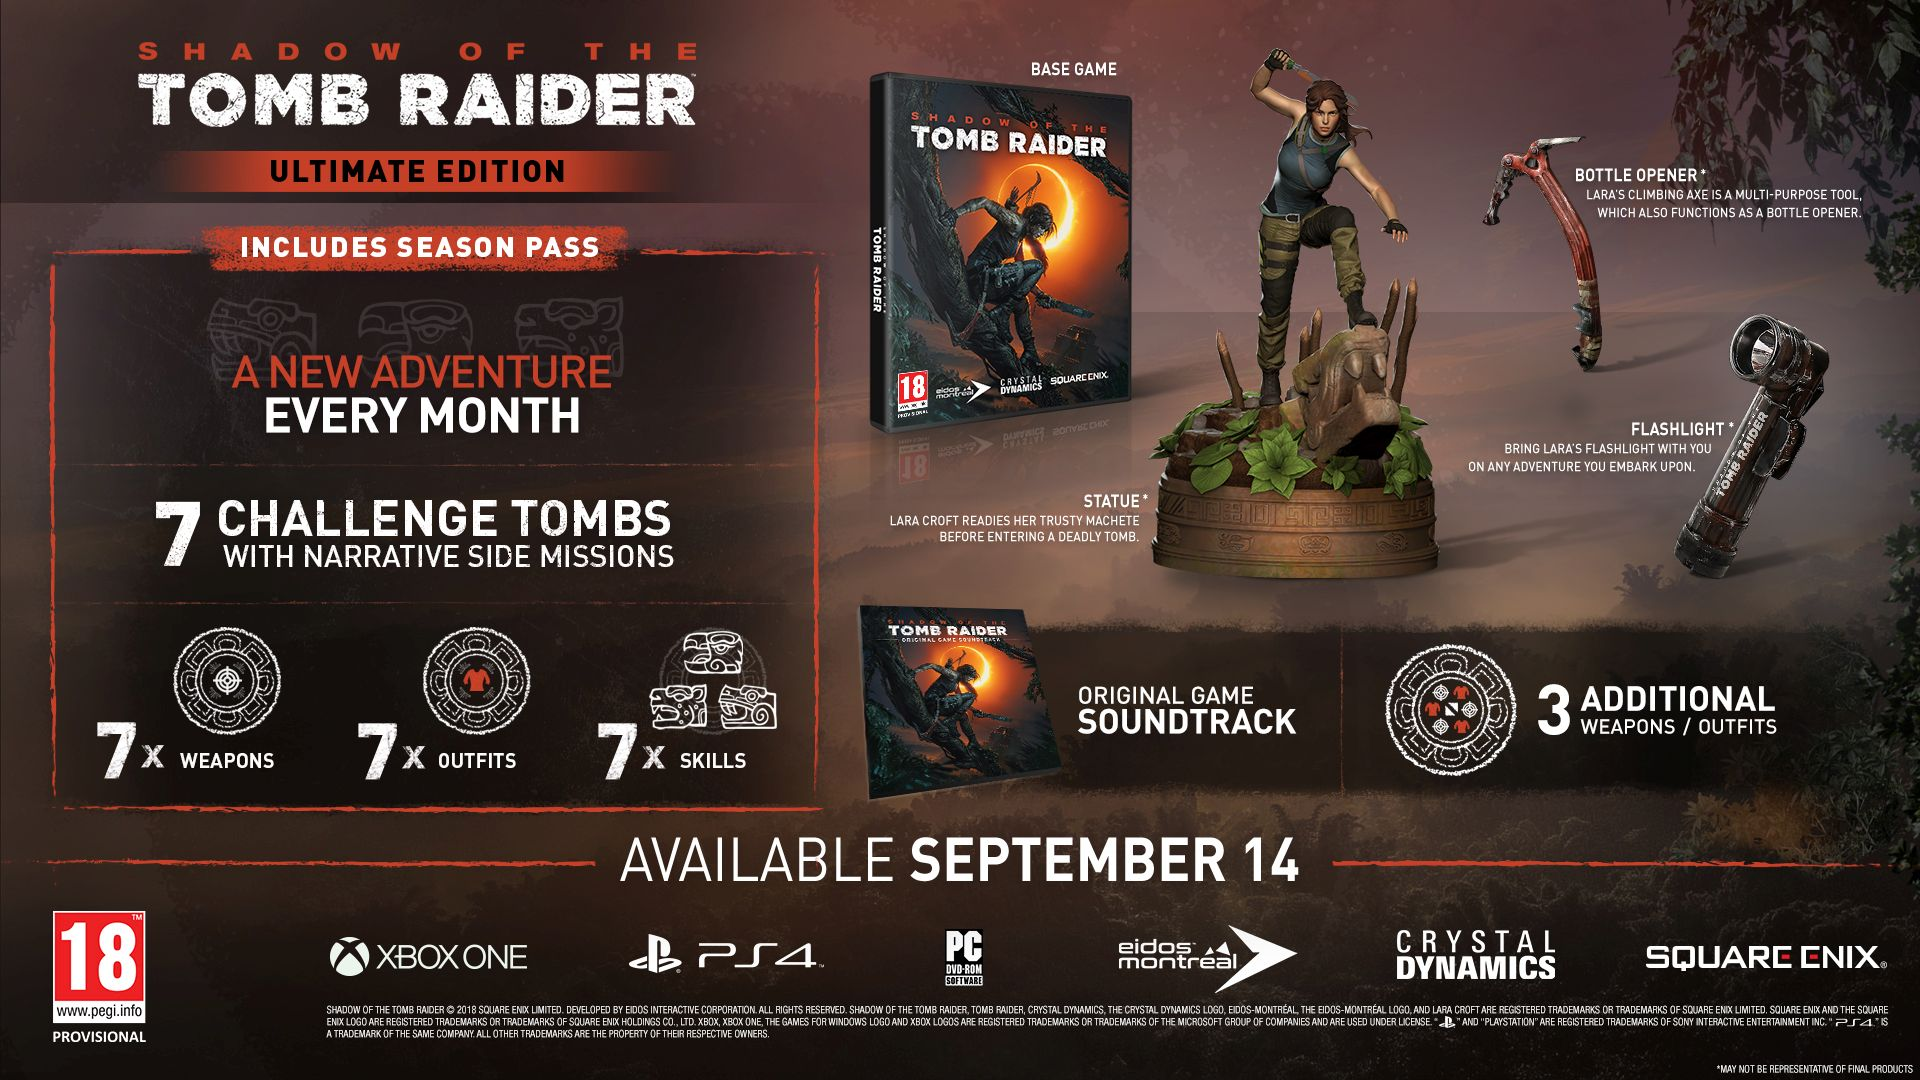 Shadow of the Tomb Raider - Ultimate Edition